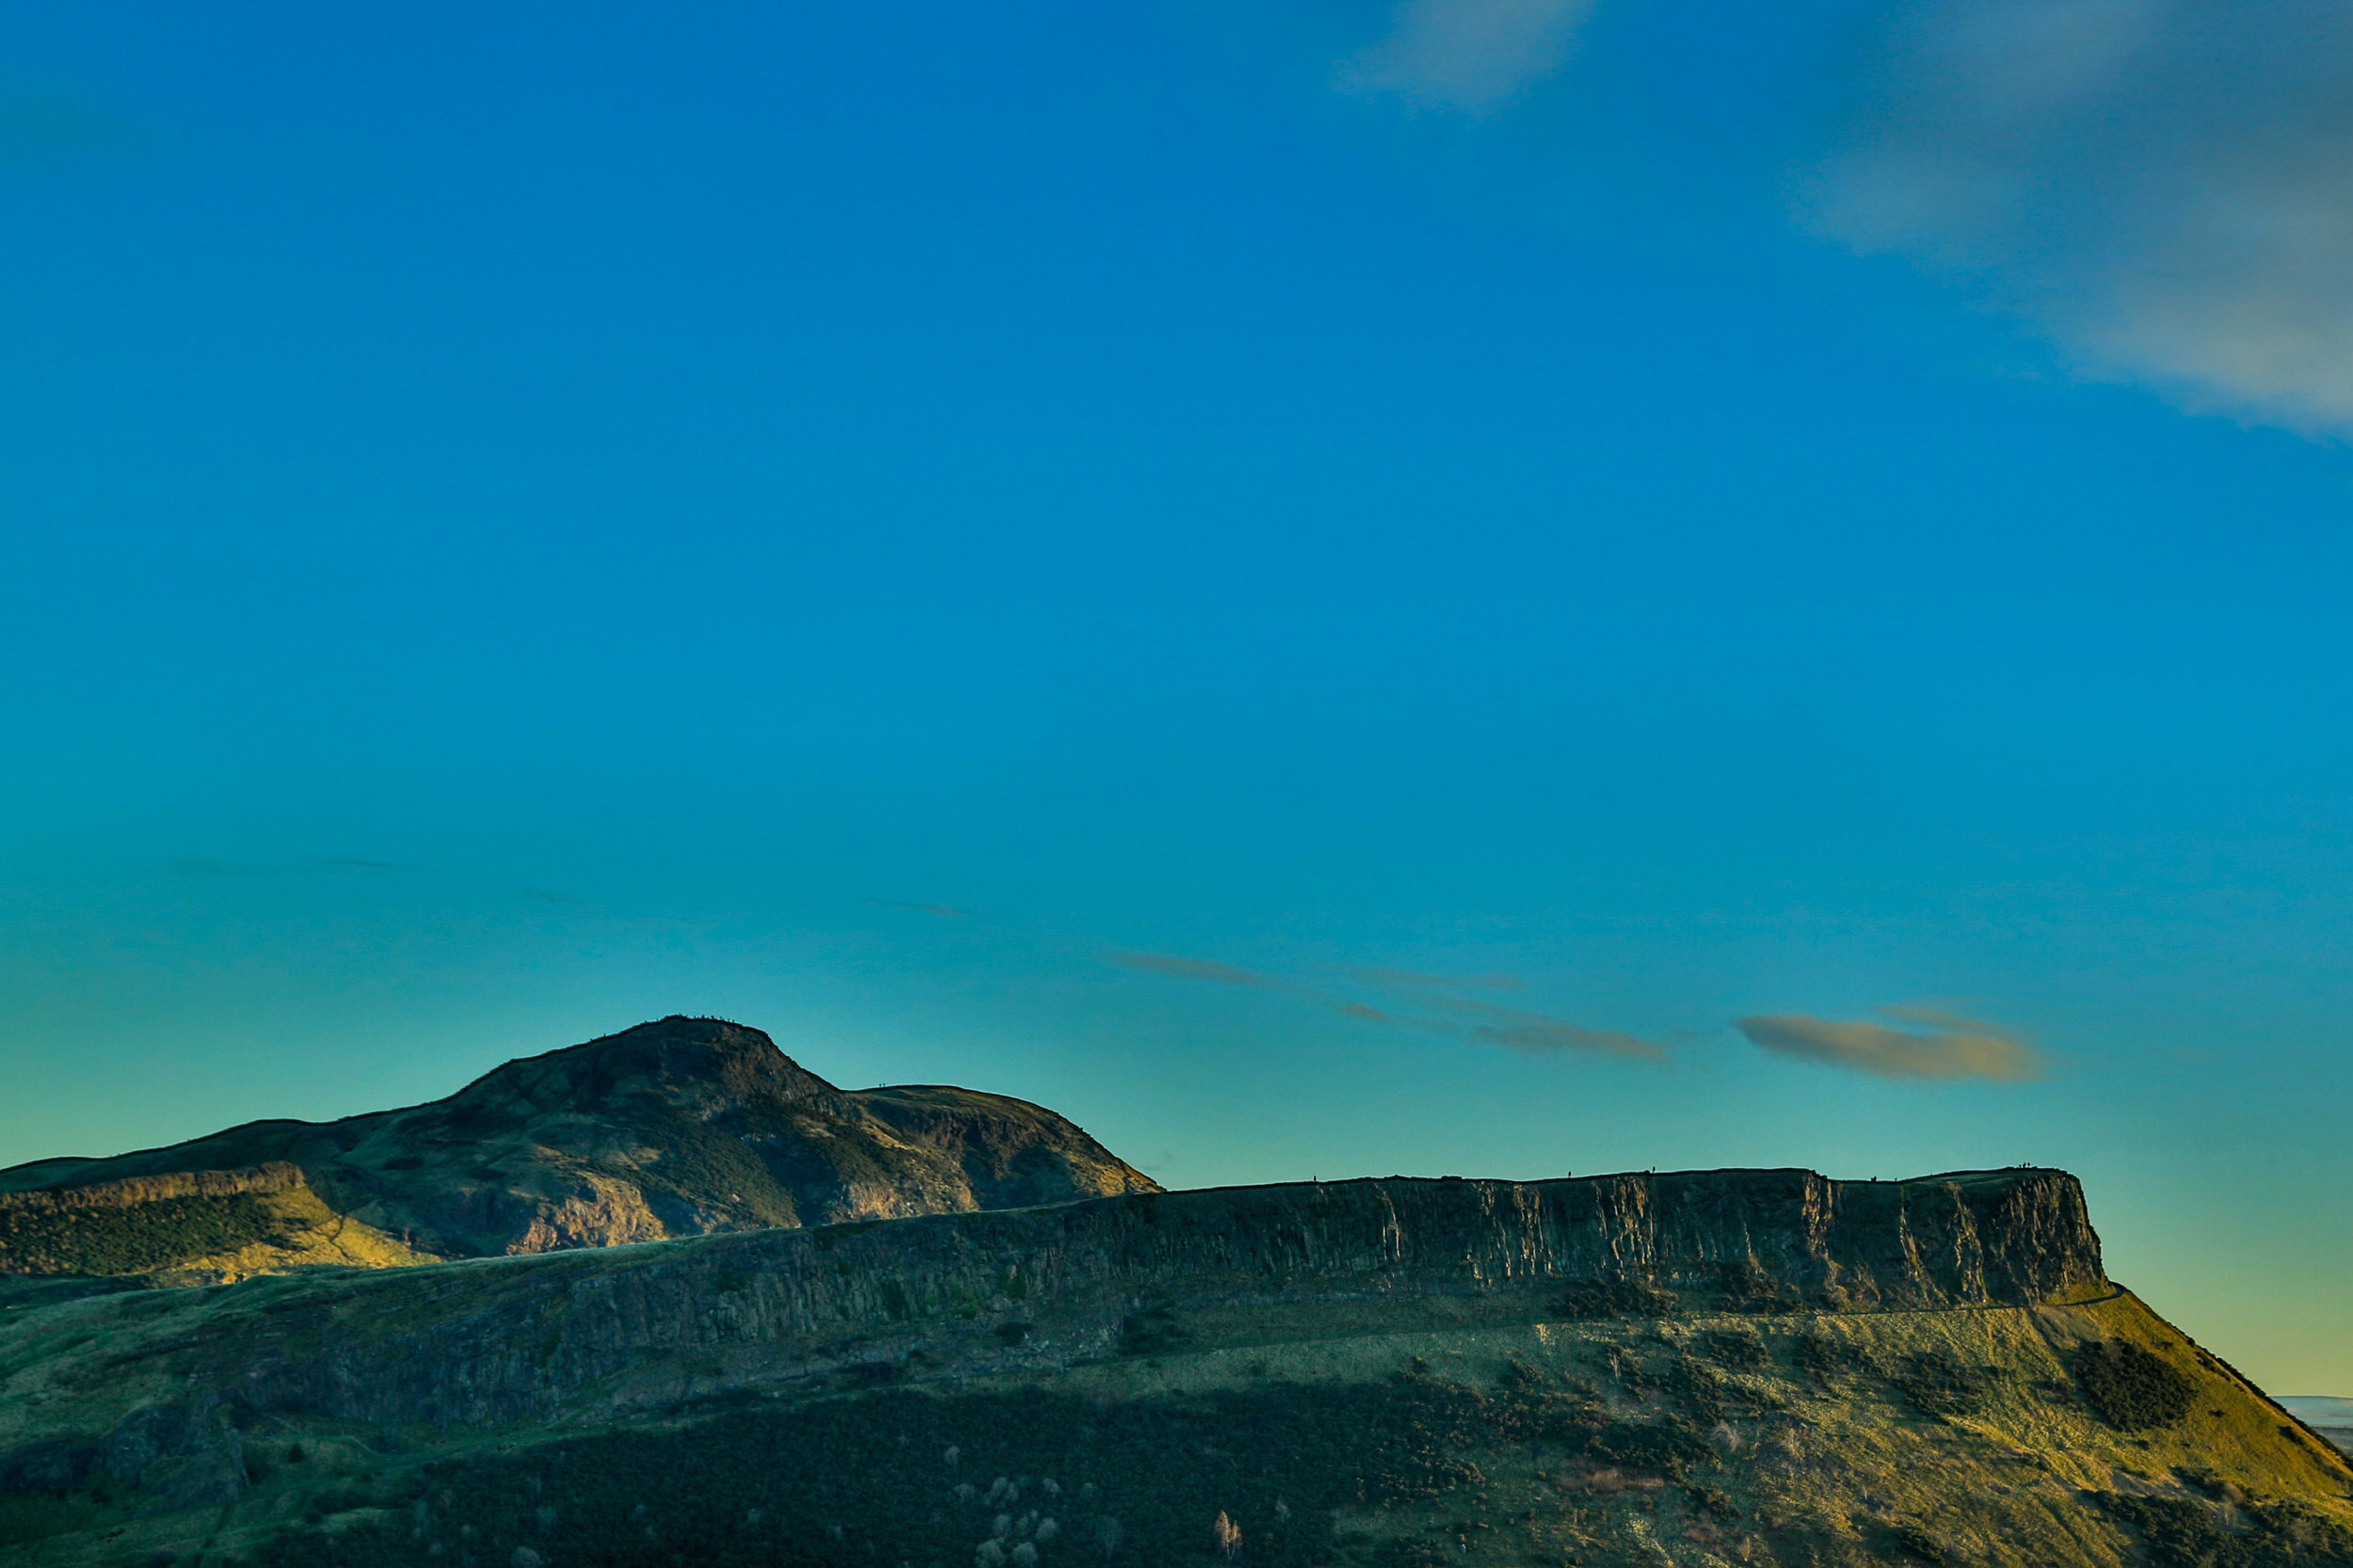 Arthurs Seat and Salisbury Crags